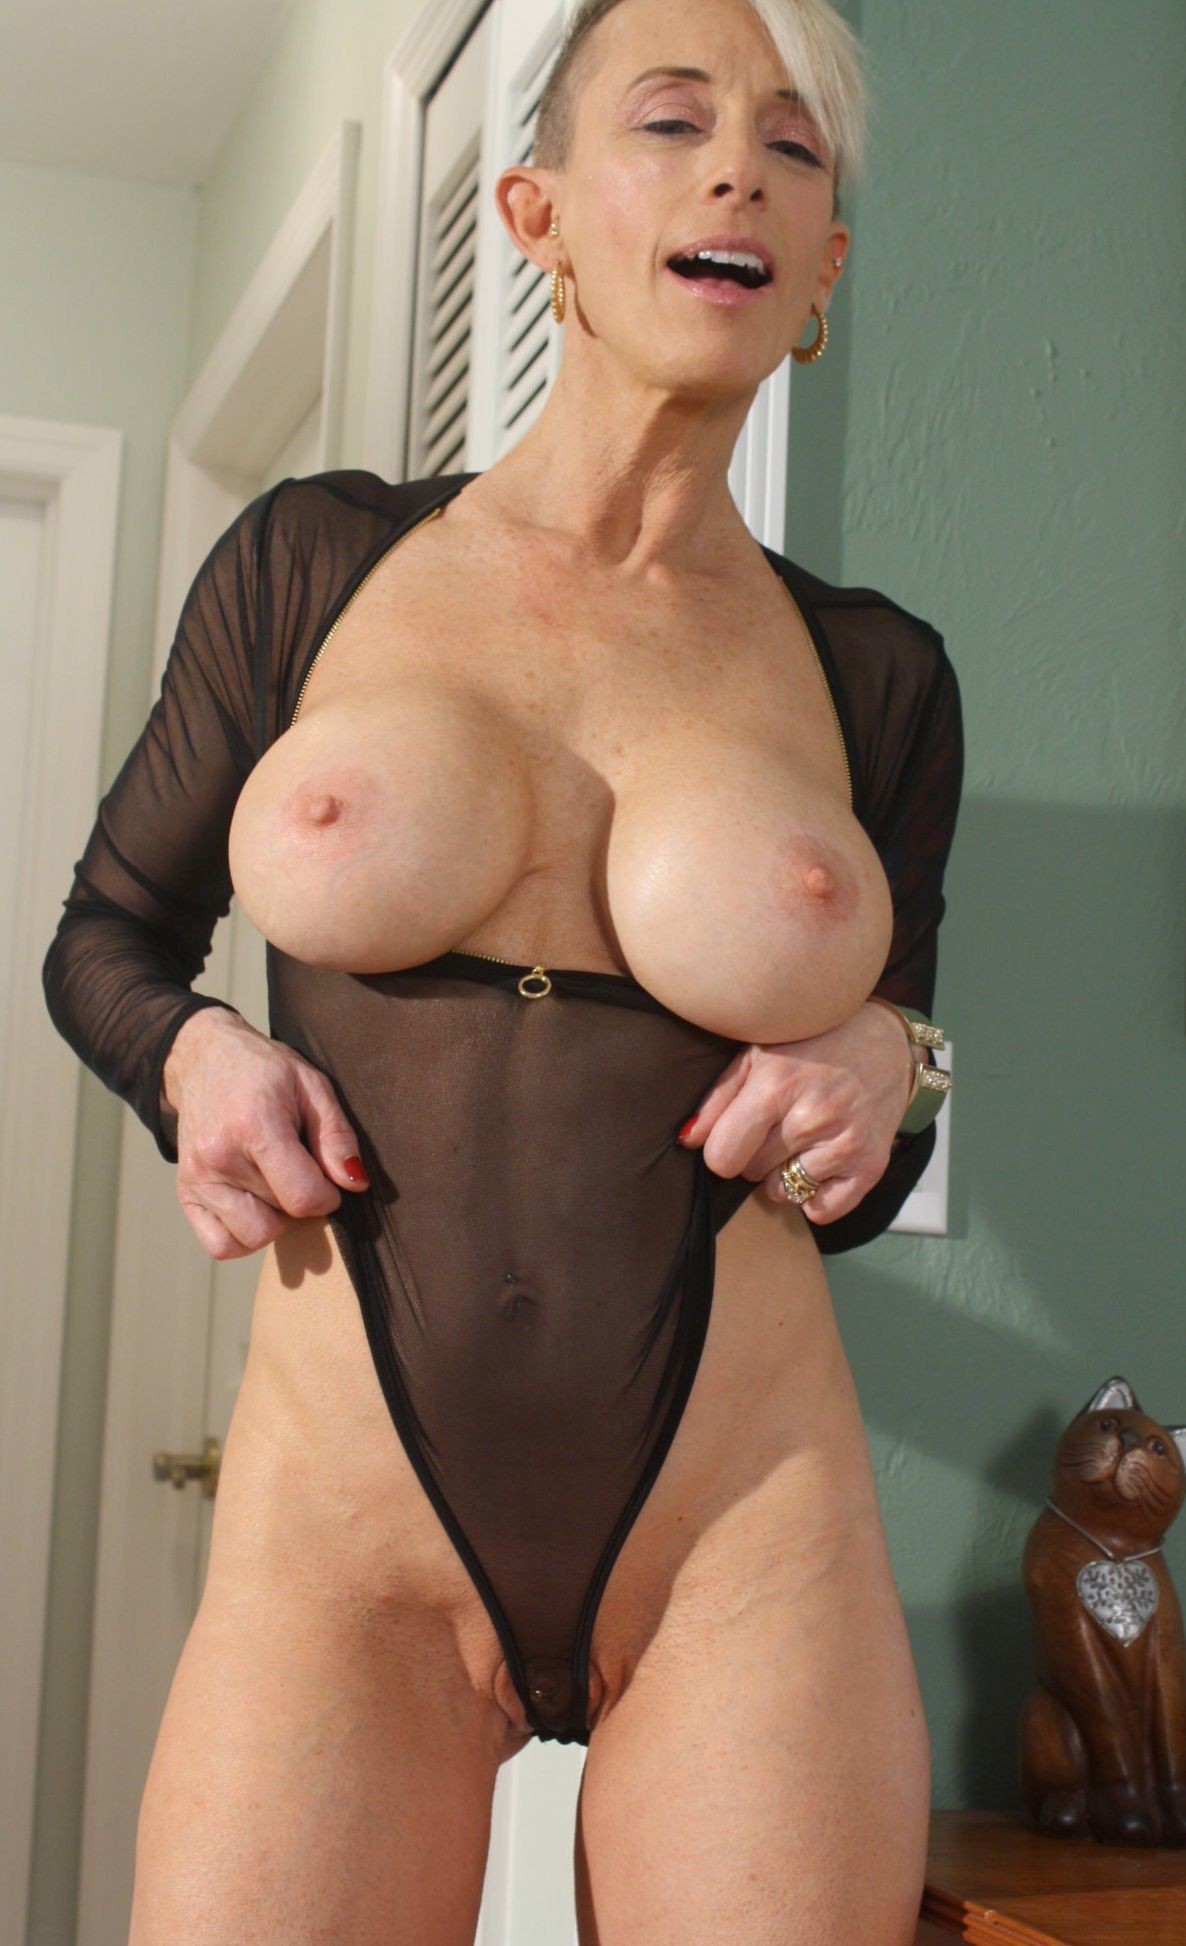 Very busty slutty granny on dating site Part 6